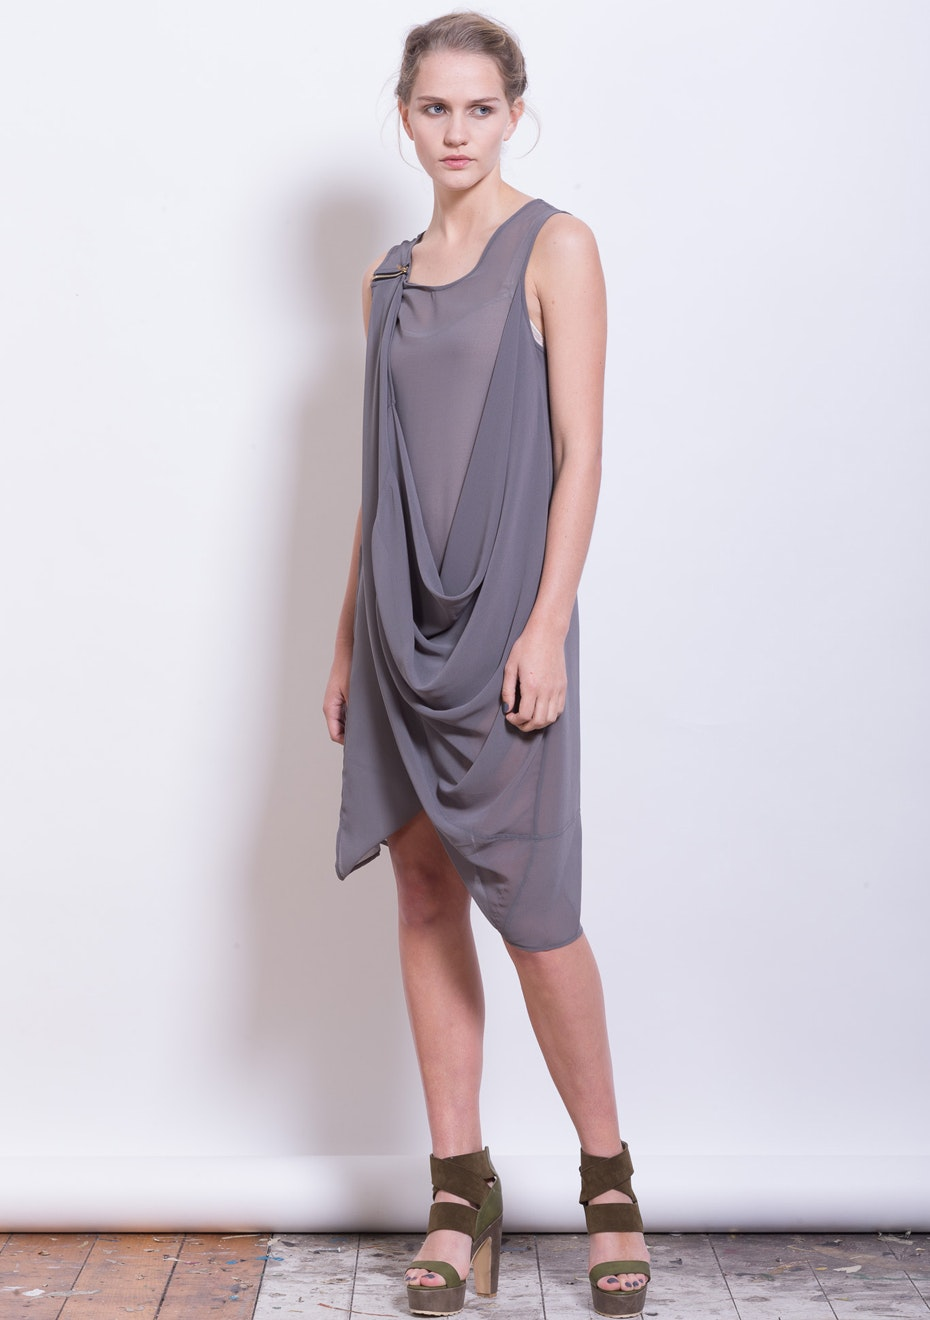 X-Plain - Magical Display Dress - Silver Stone